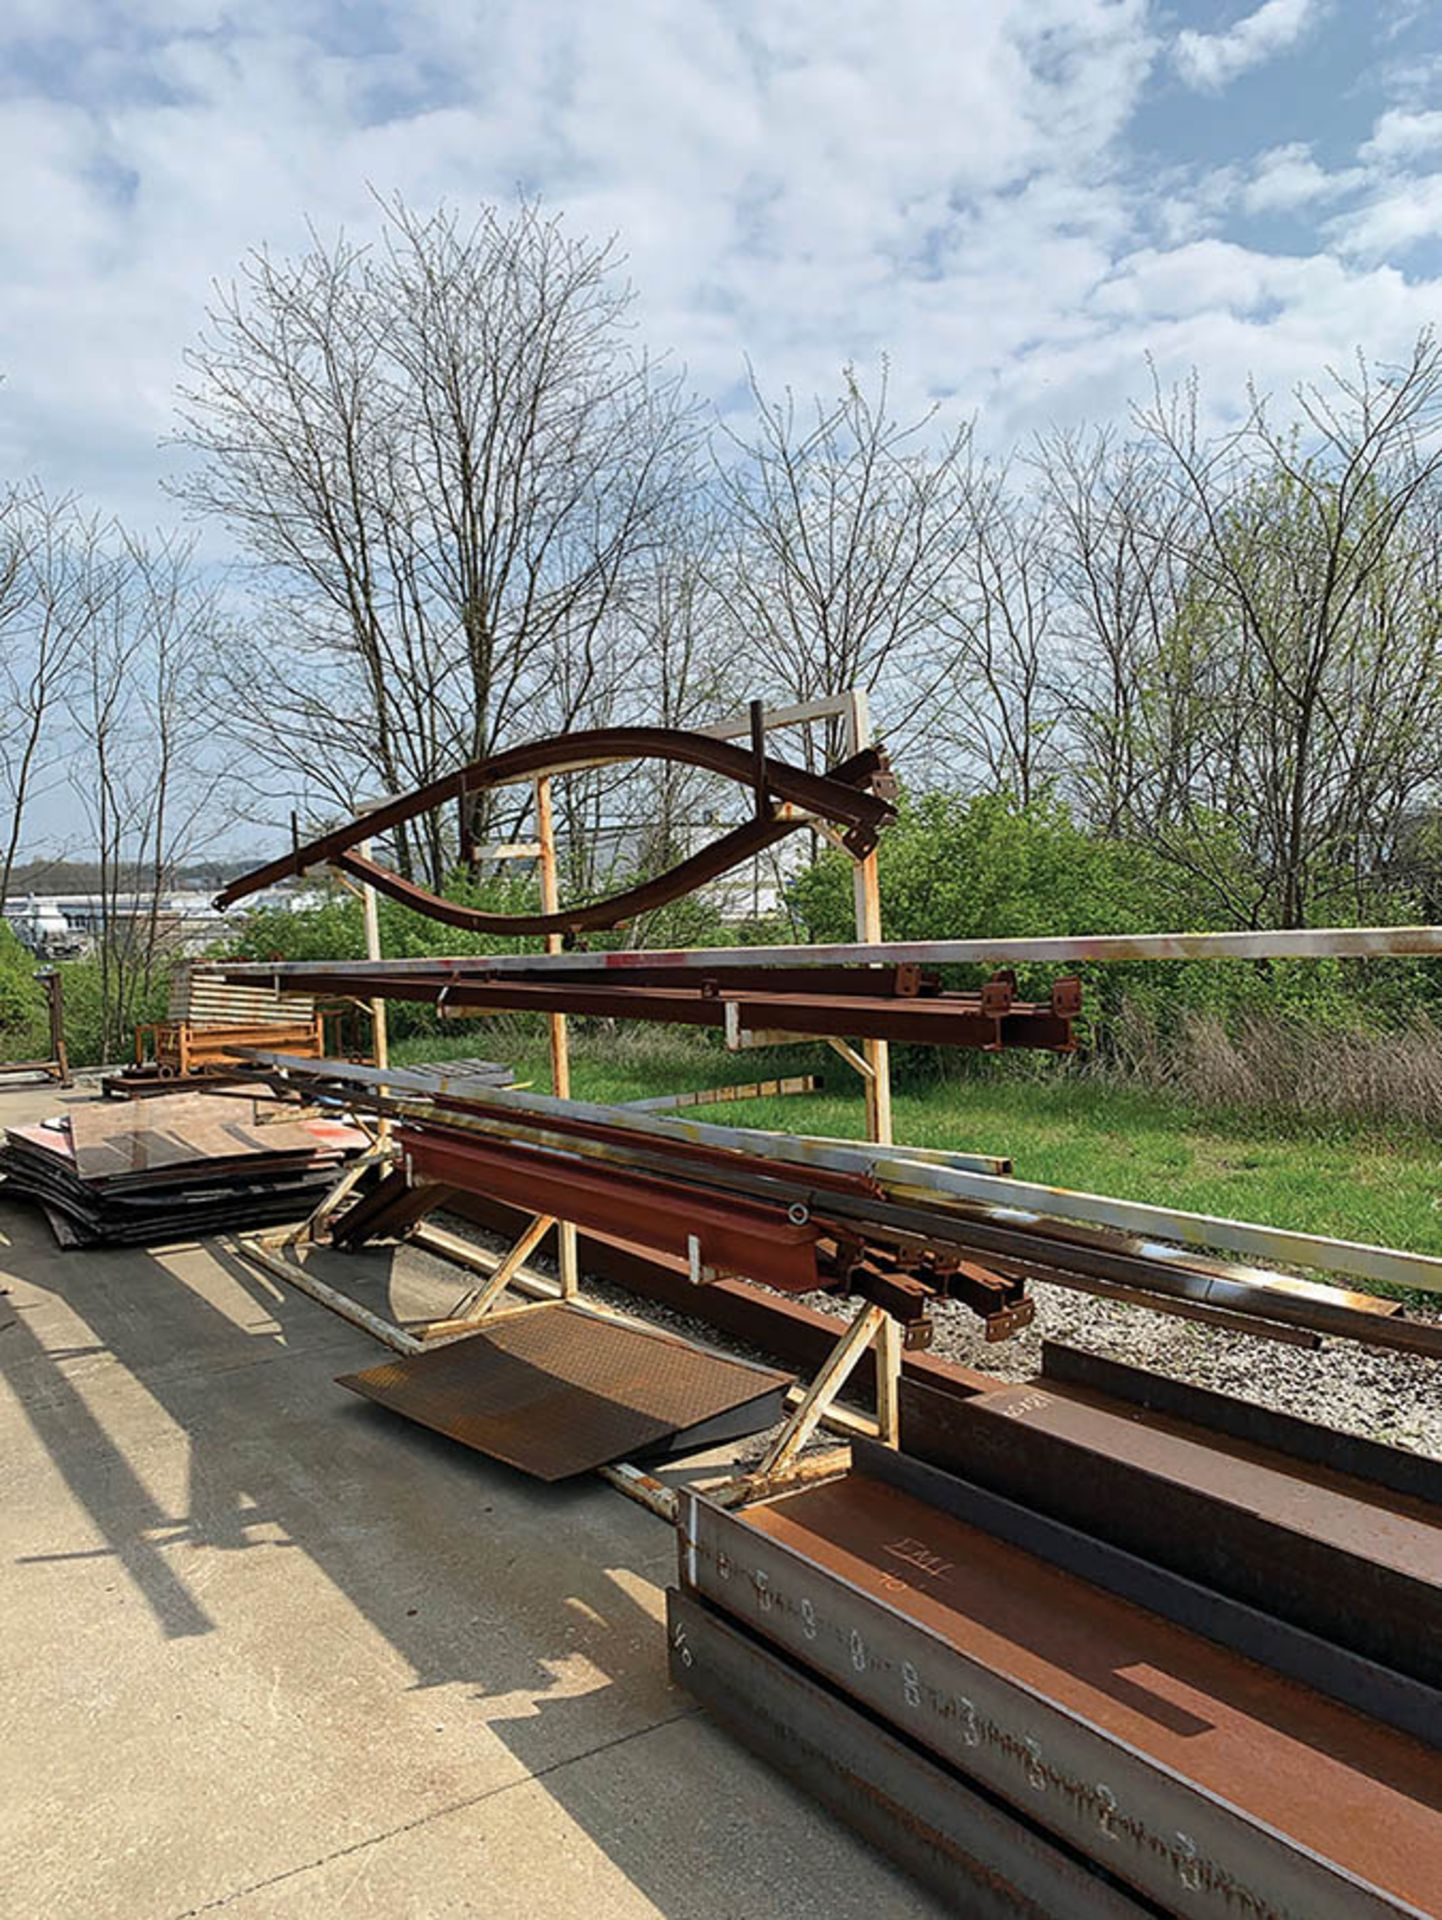 Lot 326 - ASSORTED STEEL ON RACK AND I-BEAM ON GROUND